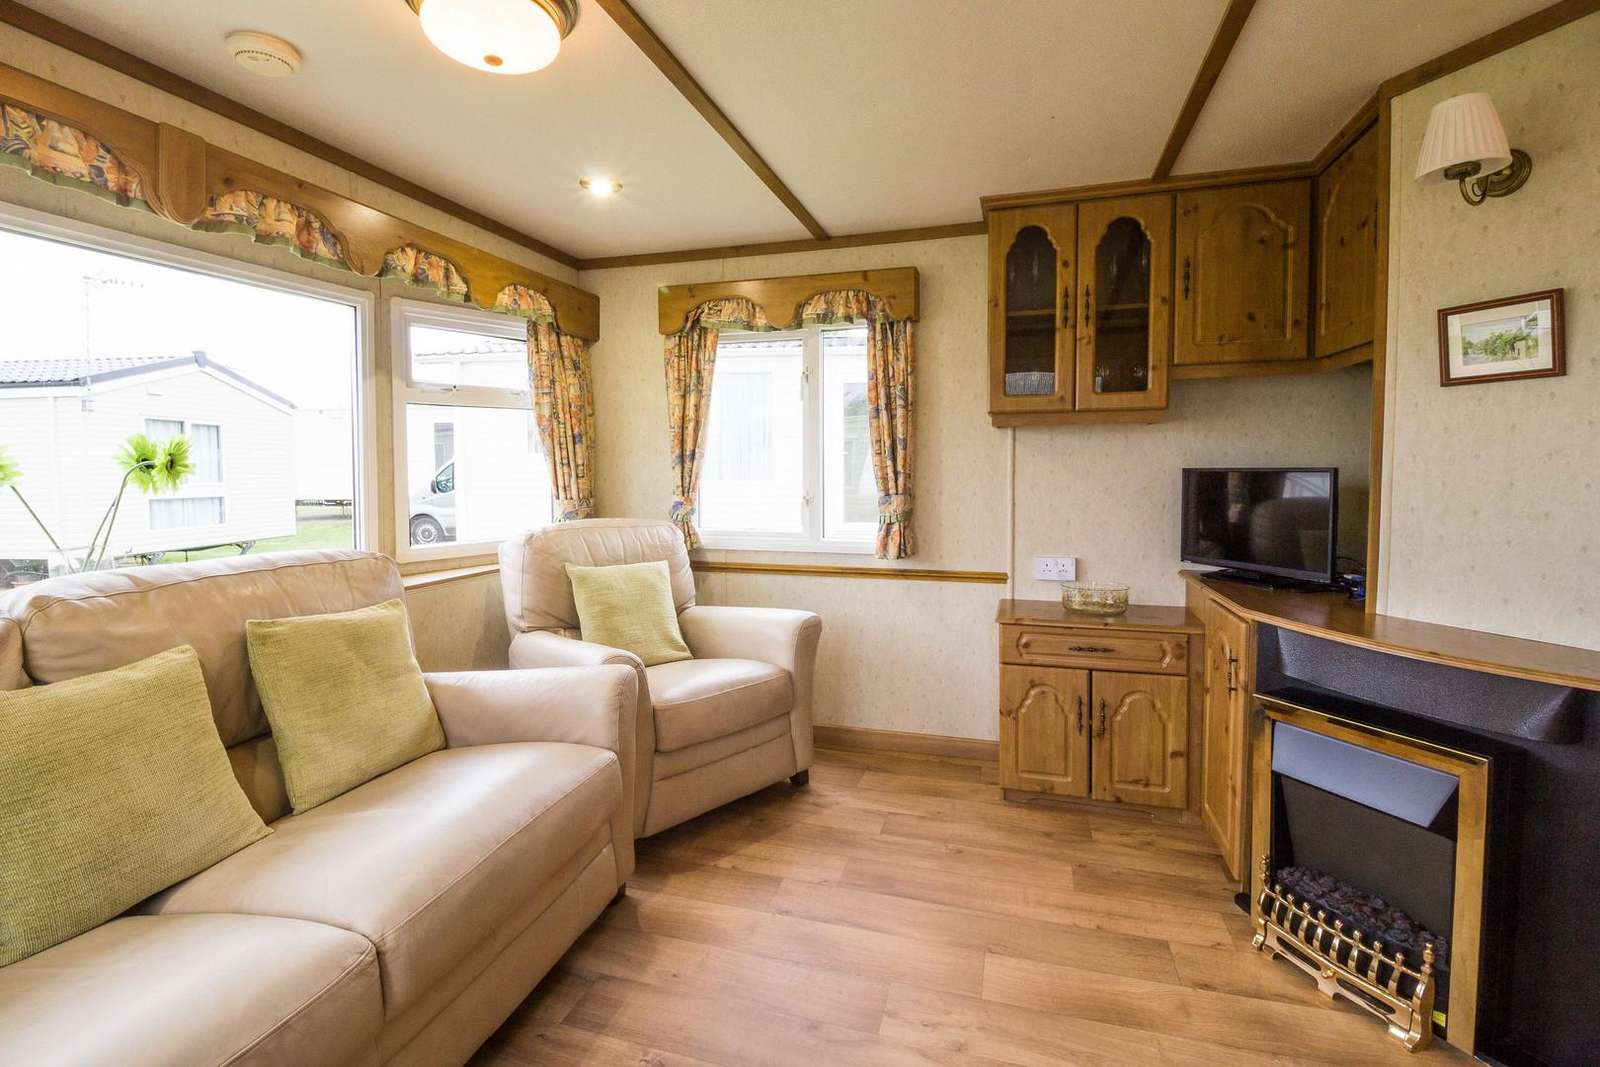 Great living area in this caravan with double glazing and central heating.